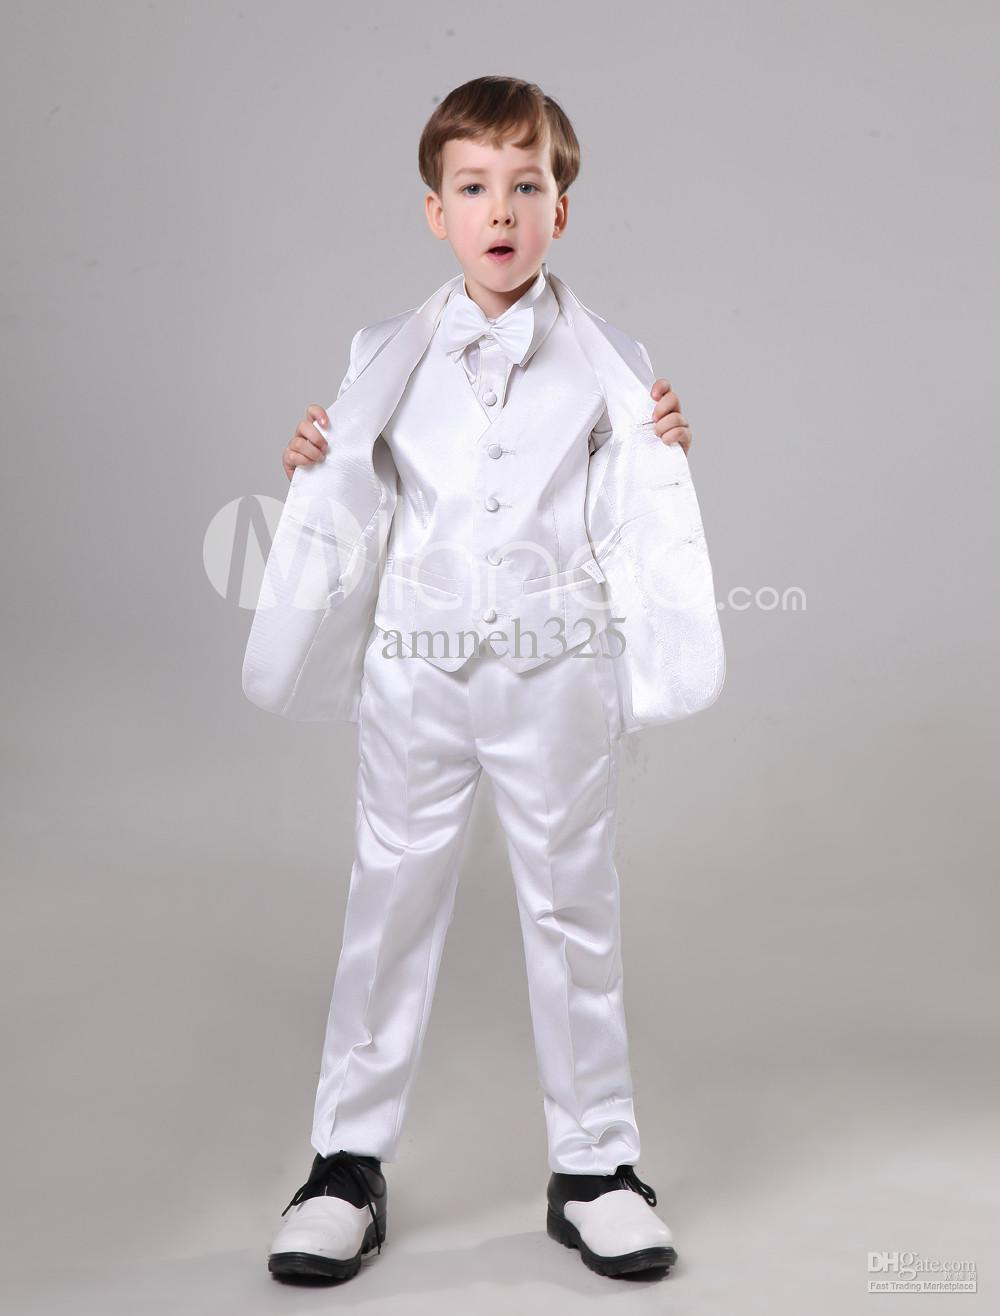 2017 Nice Quality White Satin Ring Bearer Suits For Wedding From ...